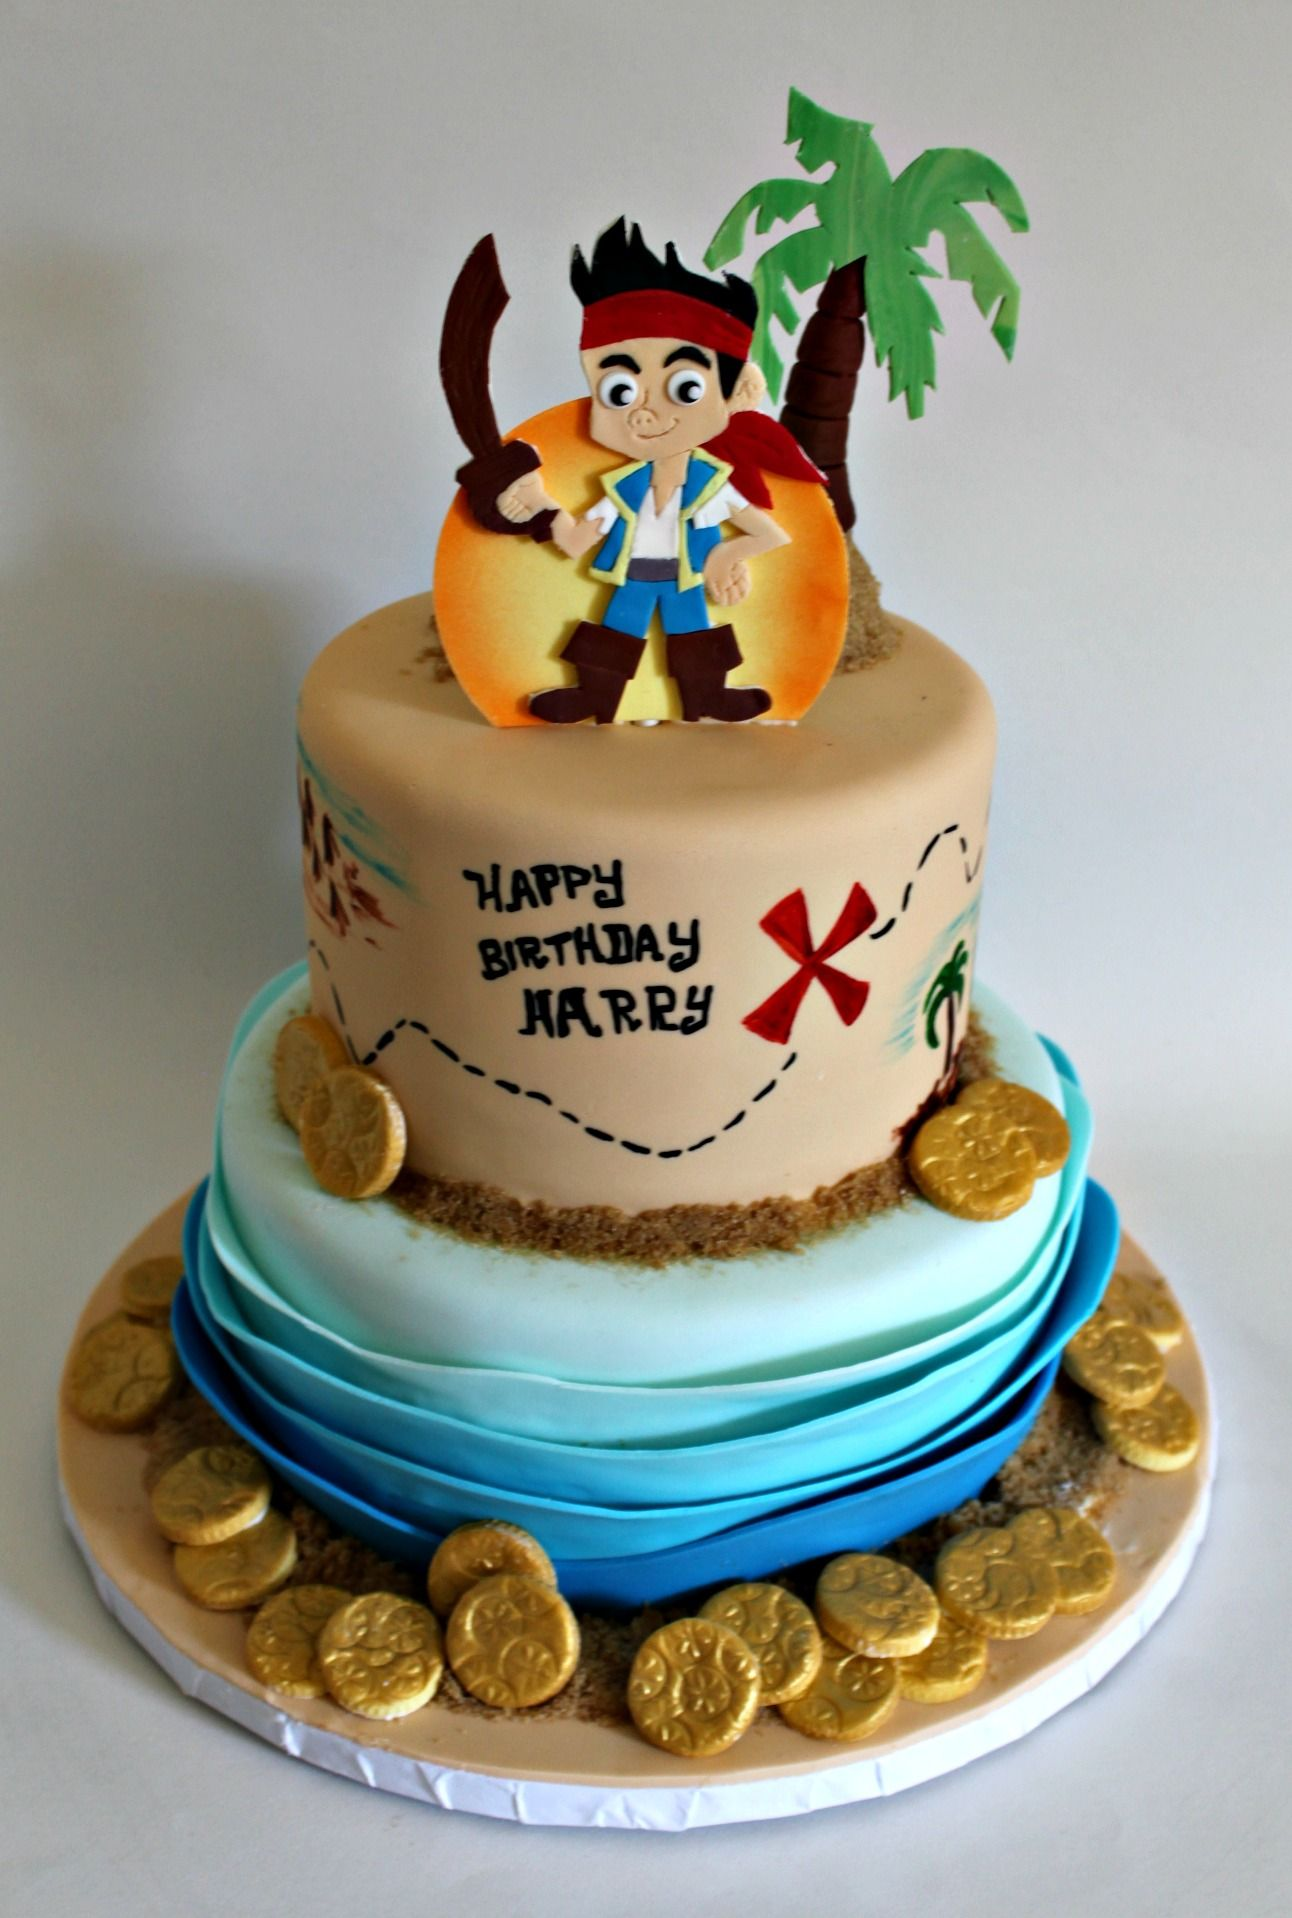 ... birthday cakes pirate party 4th birthday jake cake cake designs cake